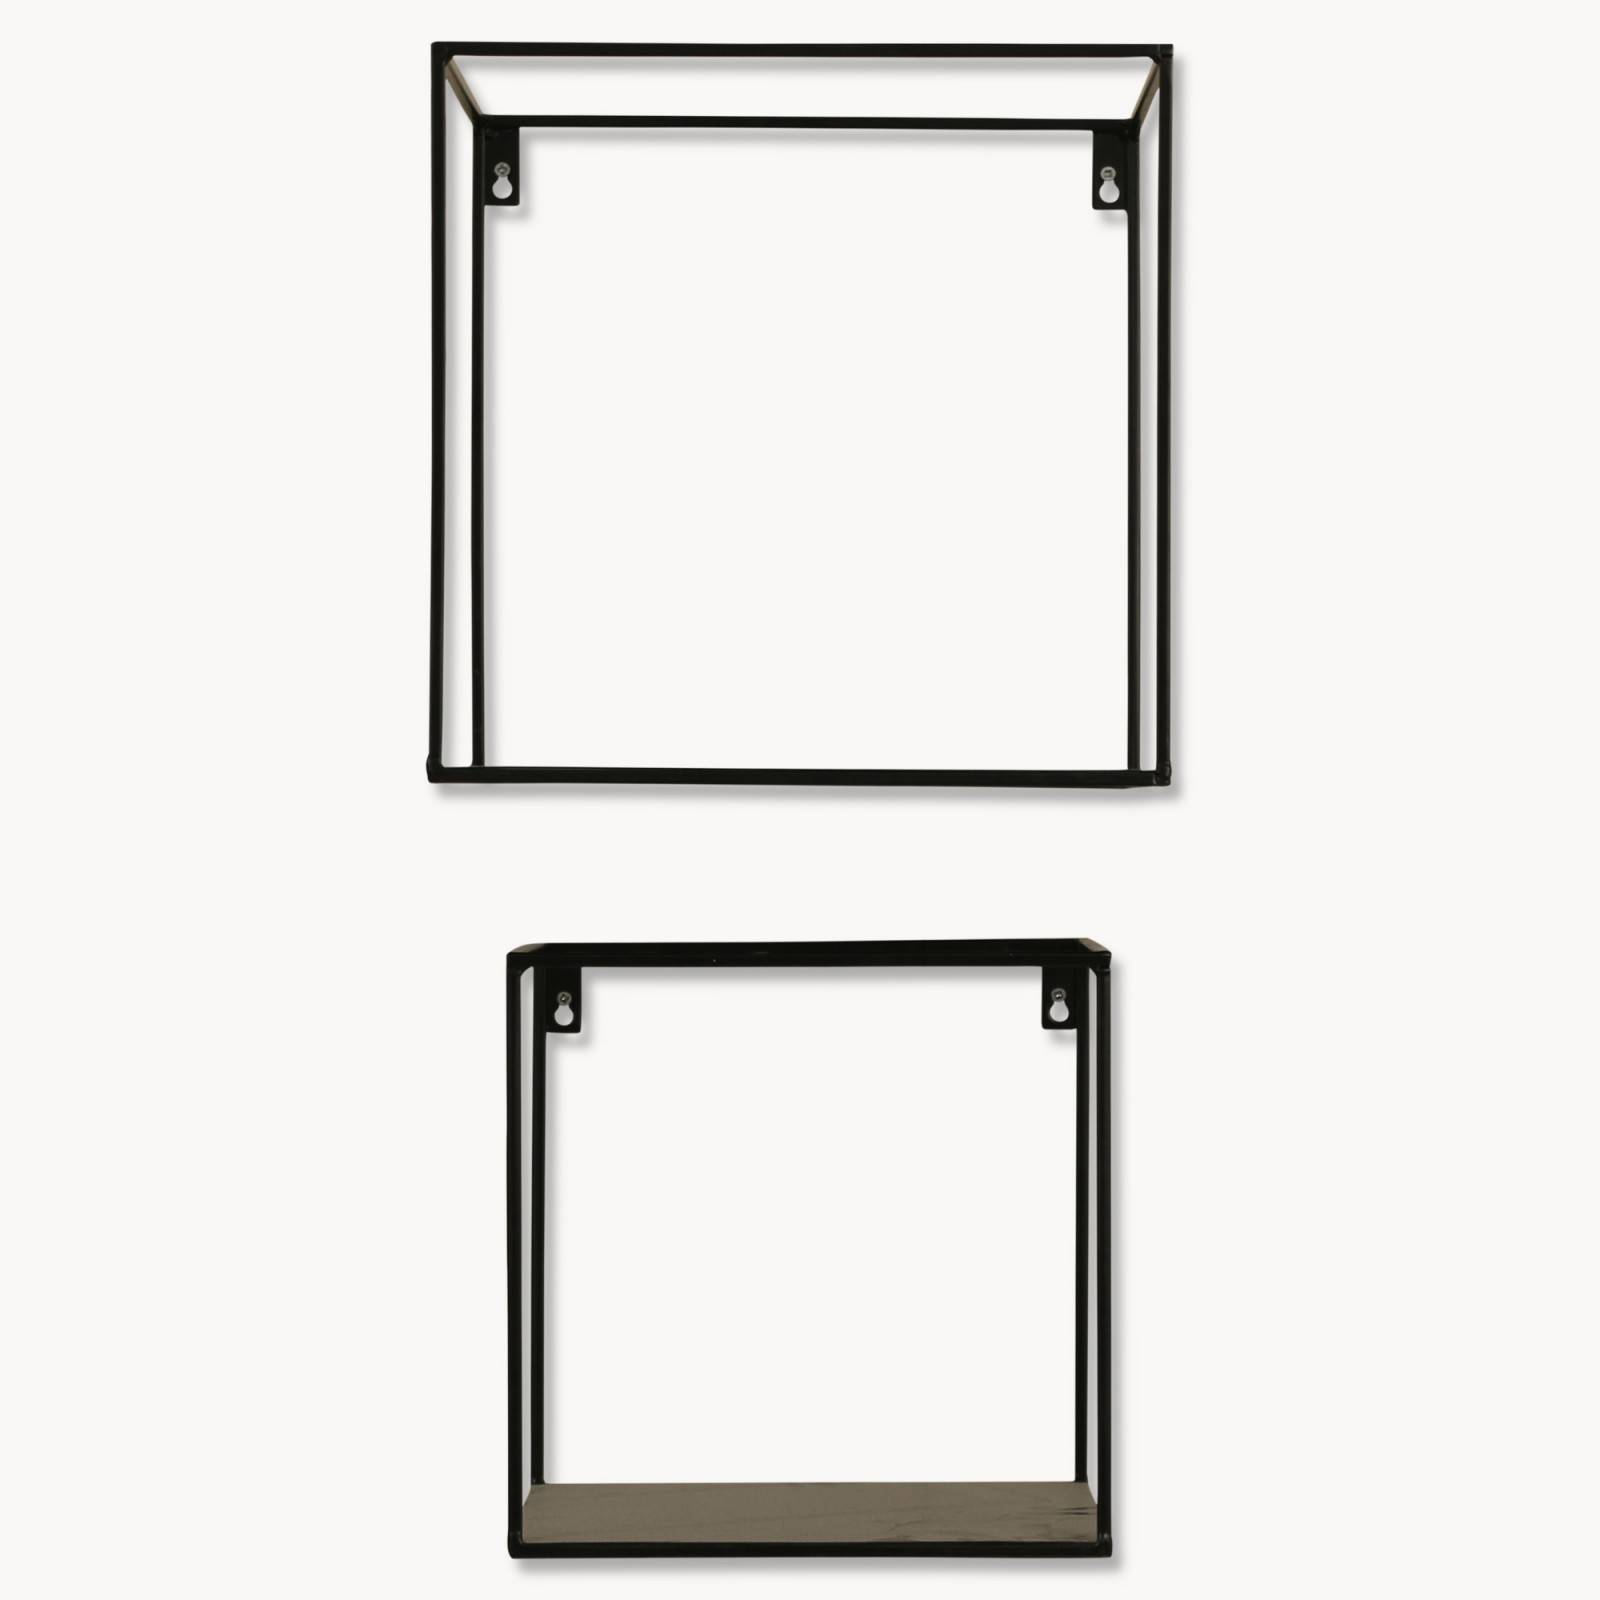 Brenton Square Black Metal Shelf Set of 2 thumbnails